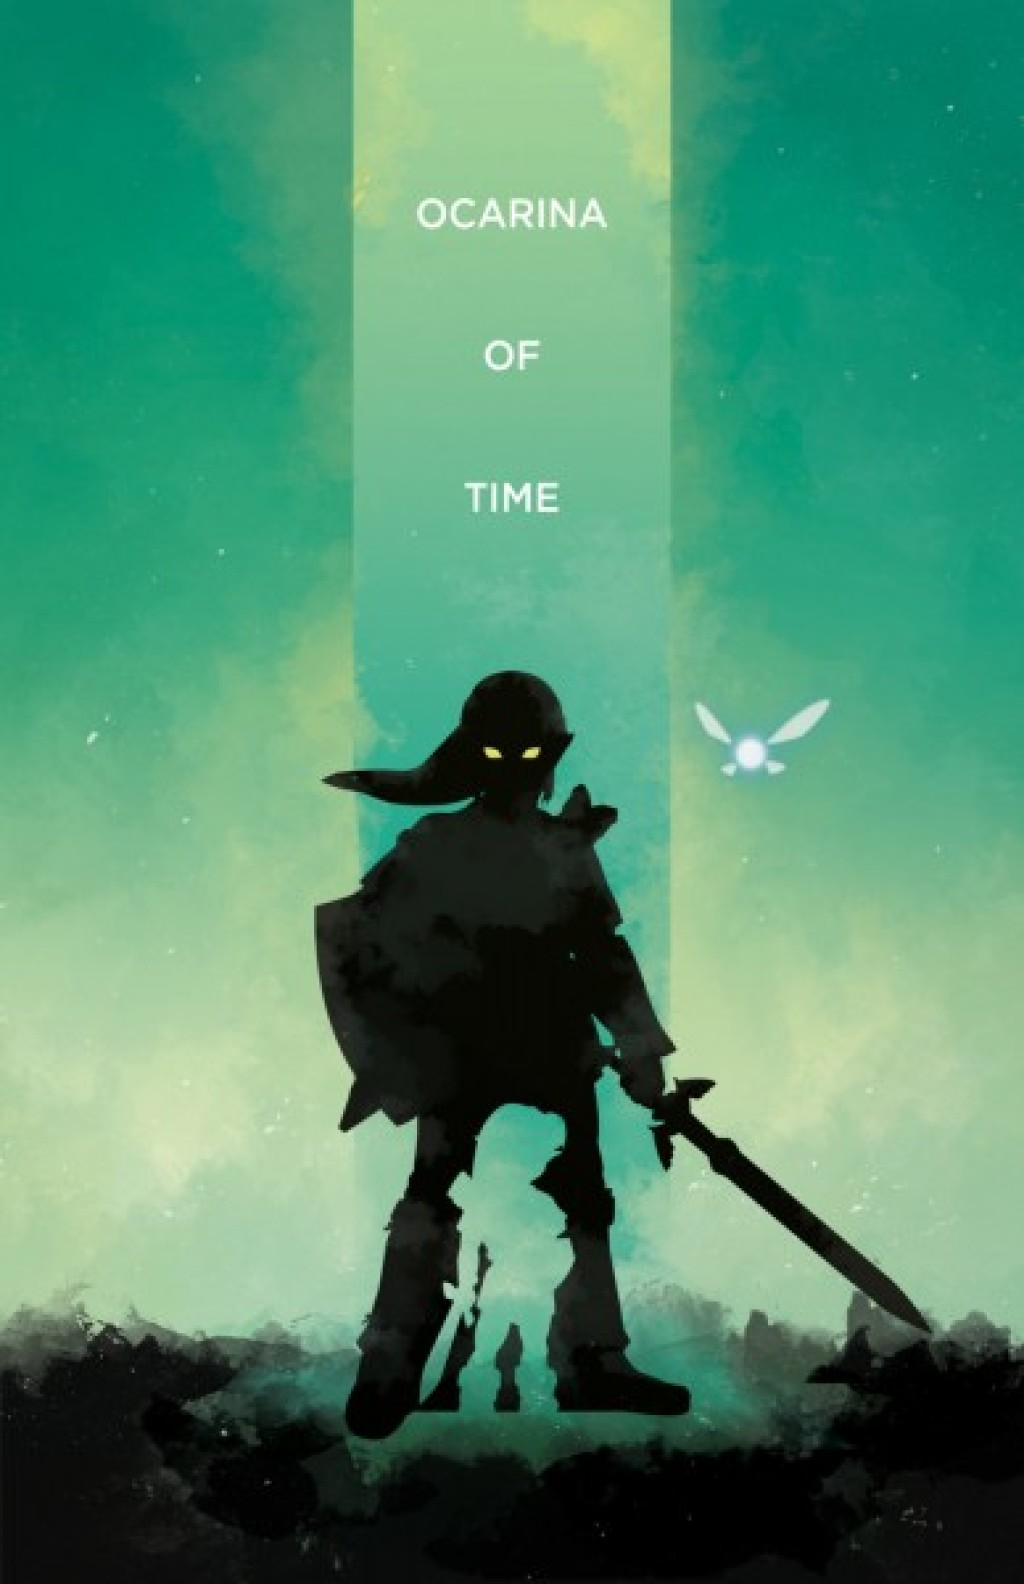 zelda-video-game-poster-by-dylan-west